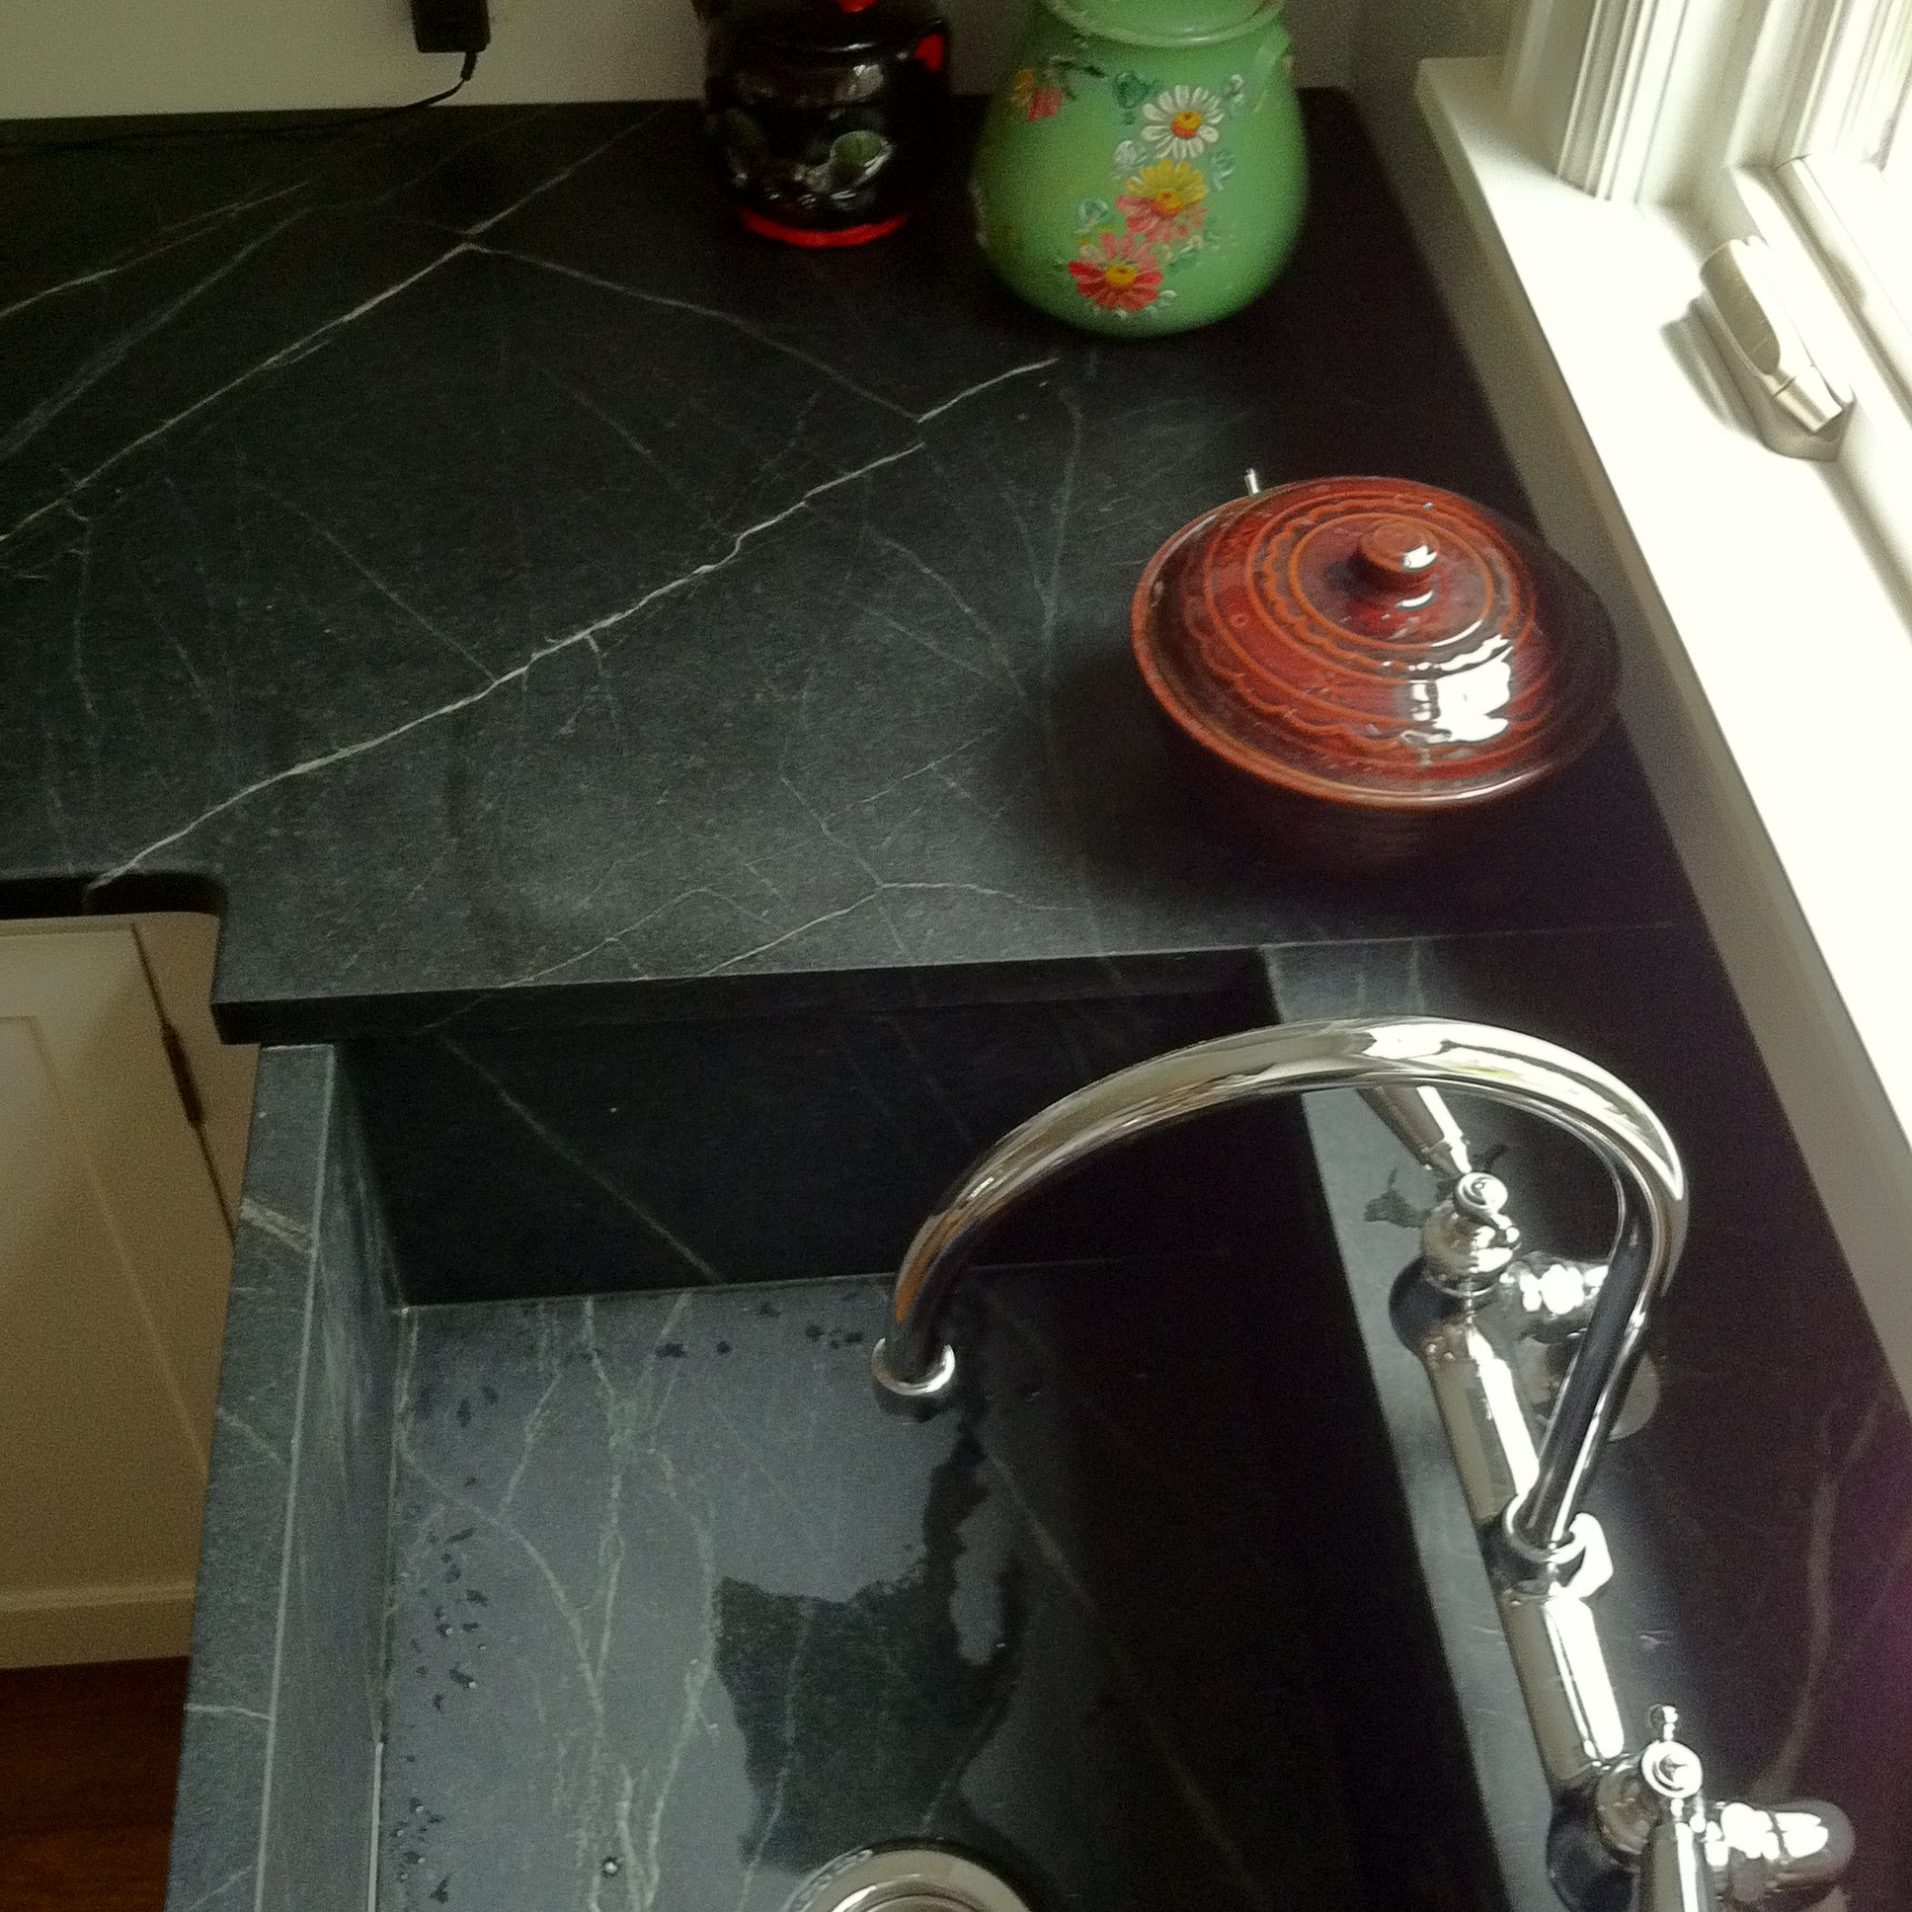 Dark stone countertop with stone sink basin